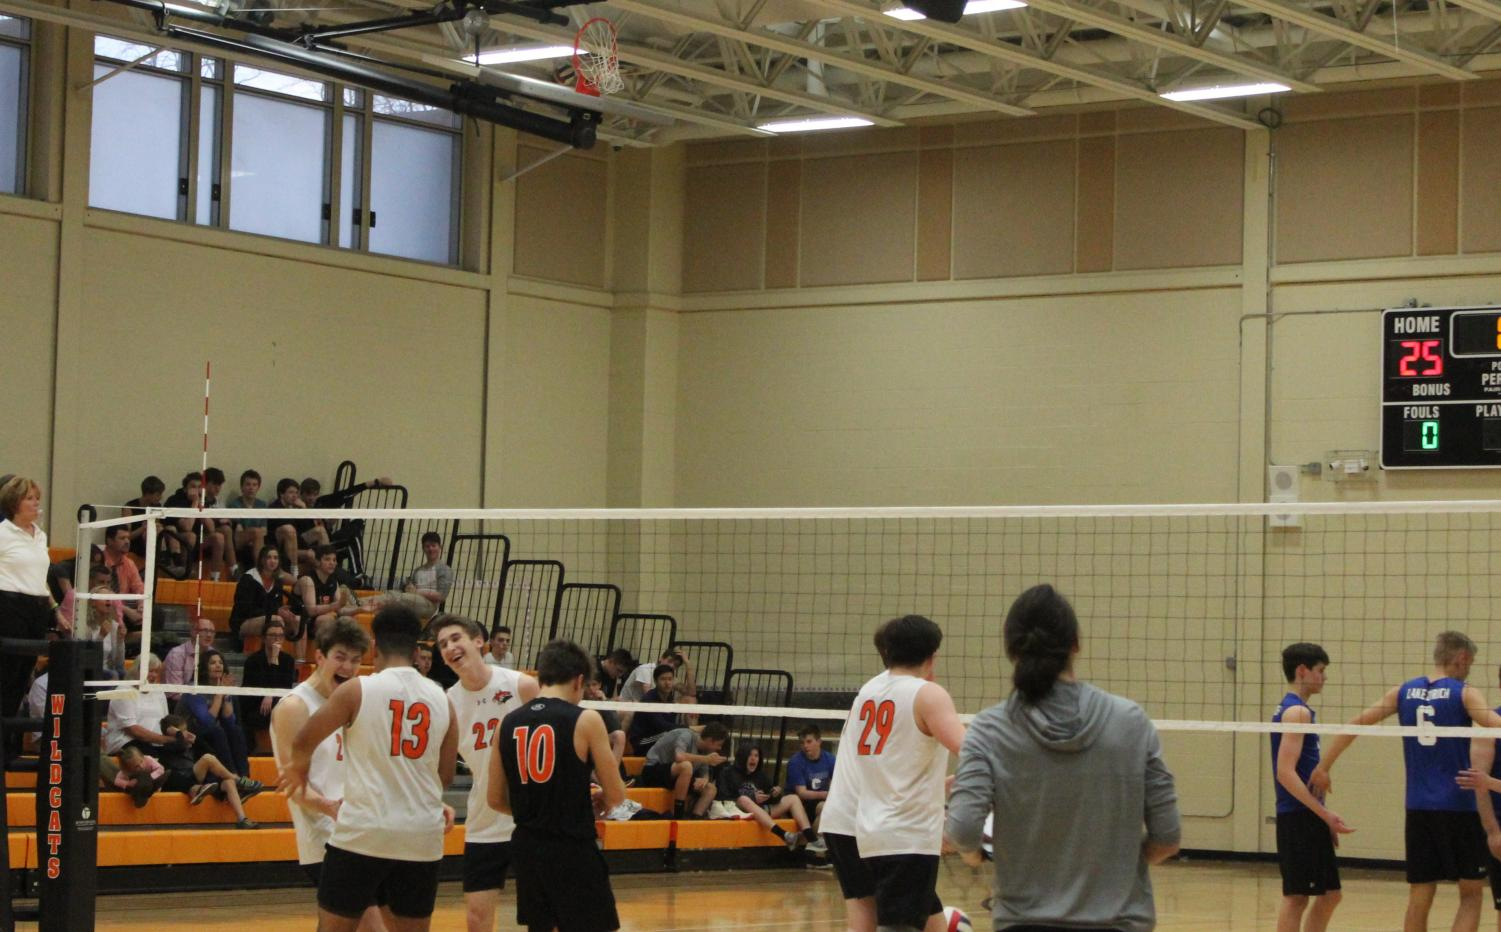 he+Wildcats+celebrate+after+securing+a+tight+first-set+victory.%0A